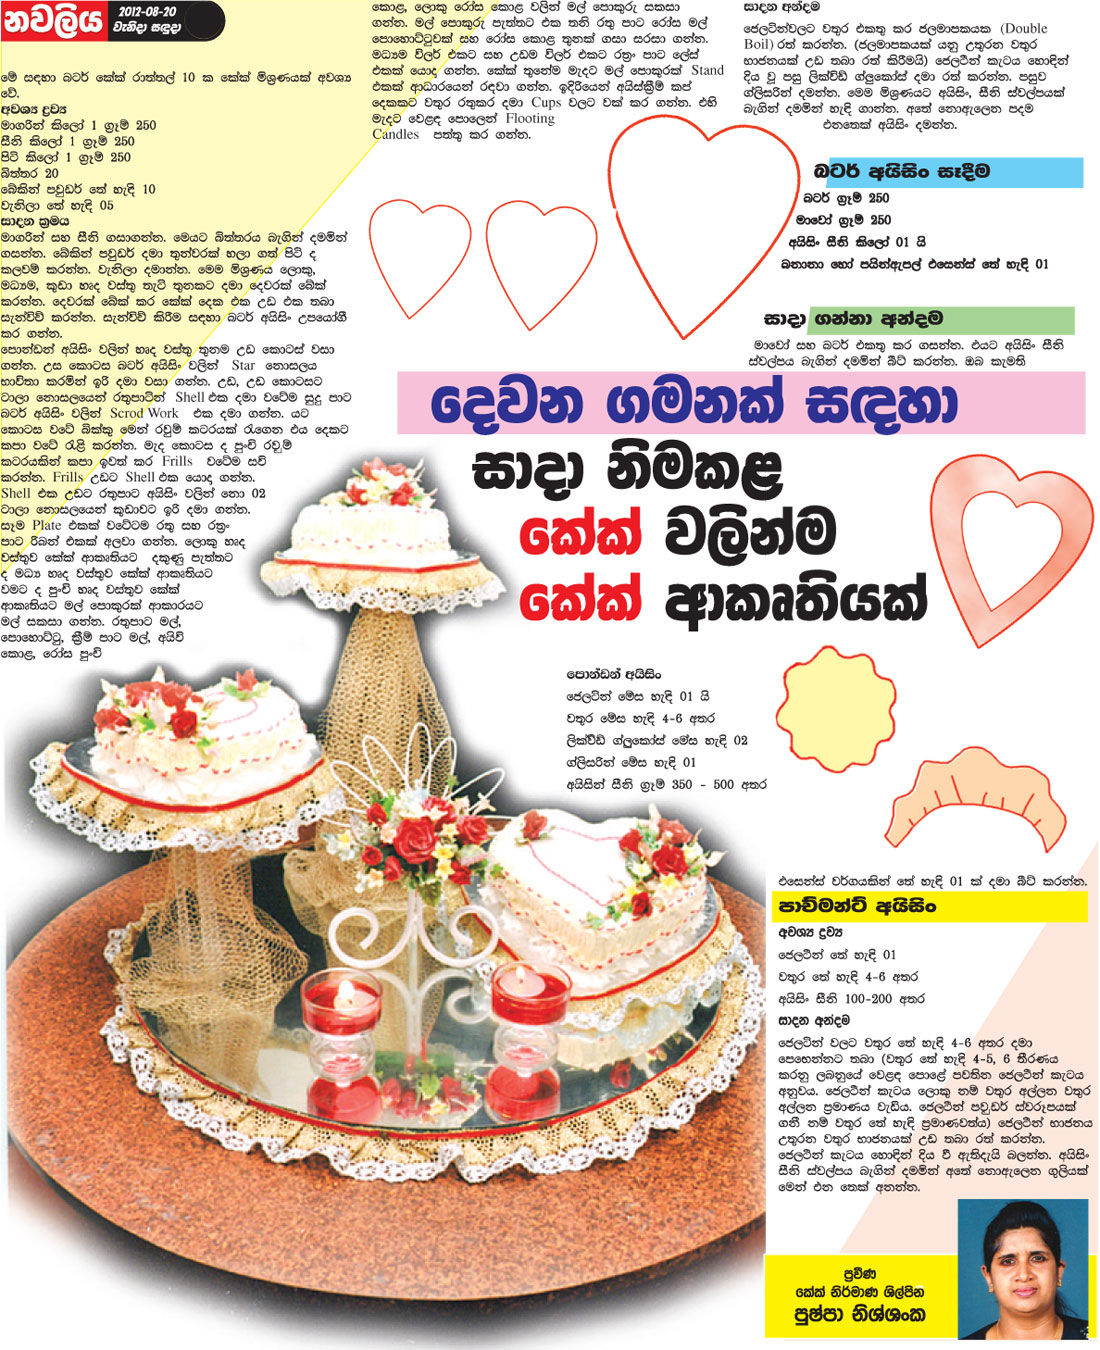 wedding cake recipes sinhala sri lankan recipes in sinhala pdf beste awesome inspiration 23634